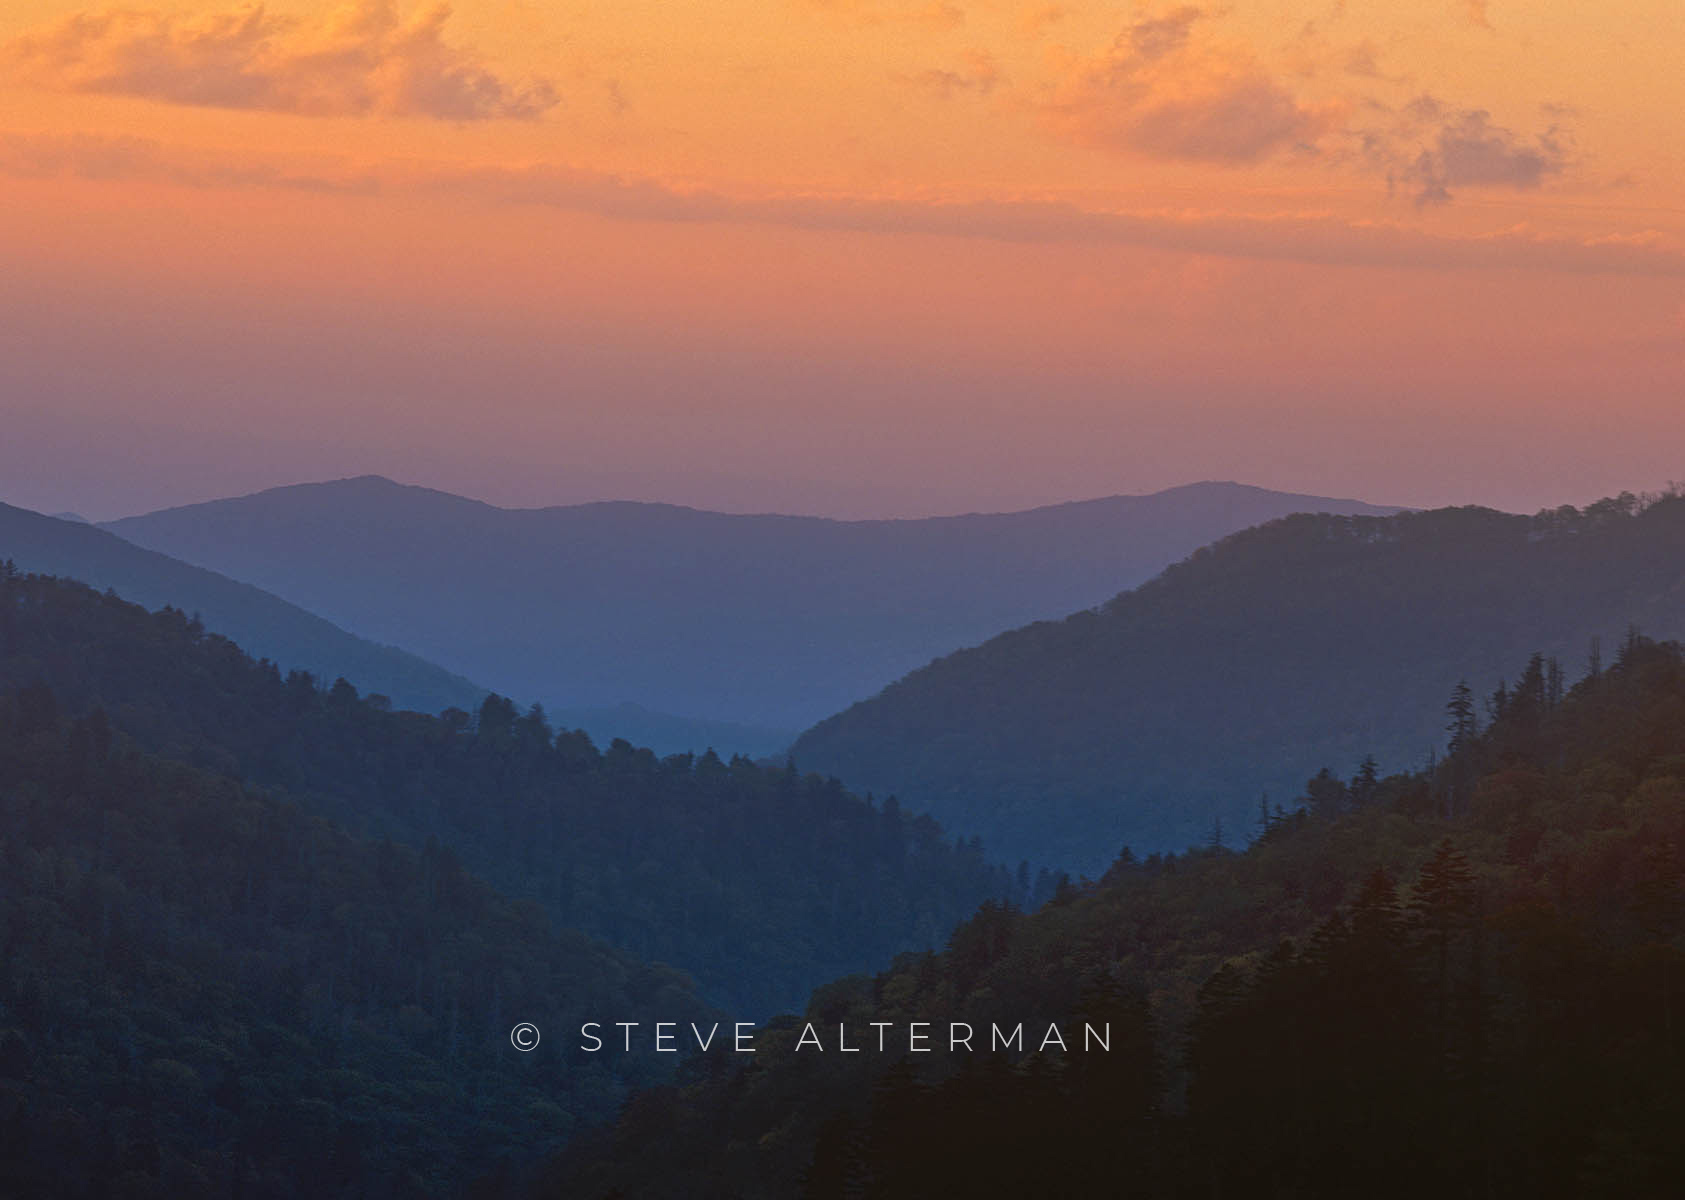 832 Dusk at Moton's Overlook - Great Smoky Mountains NP